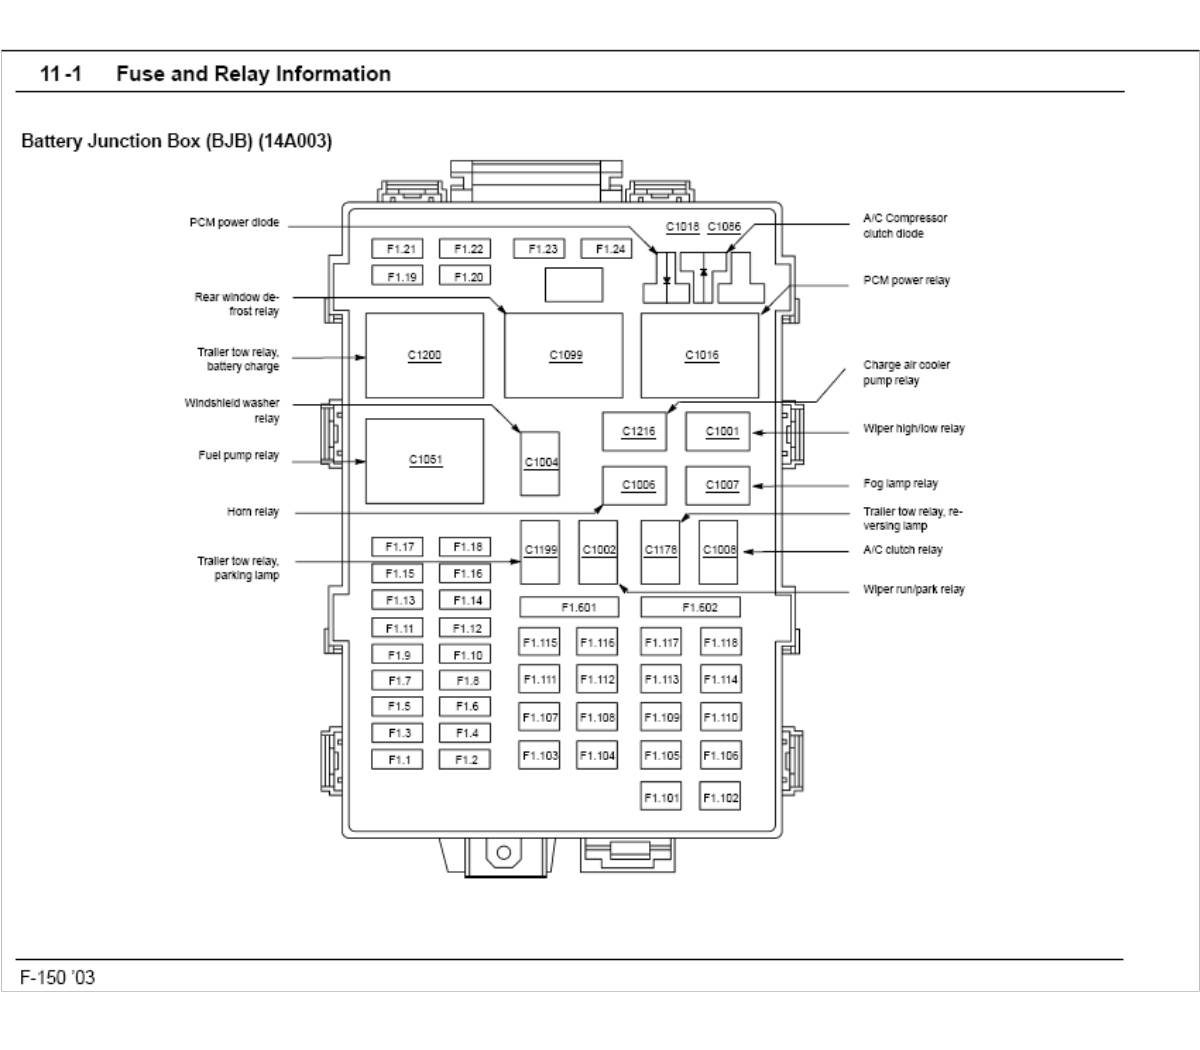 Printable Fuse Box Diagram 2000 Ford F150 : 41 Wiring